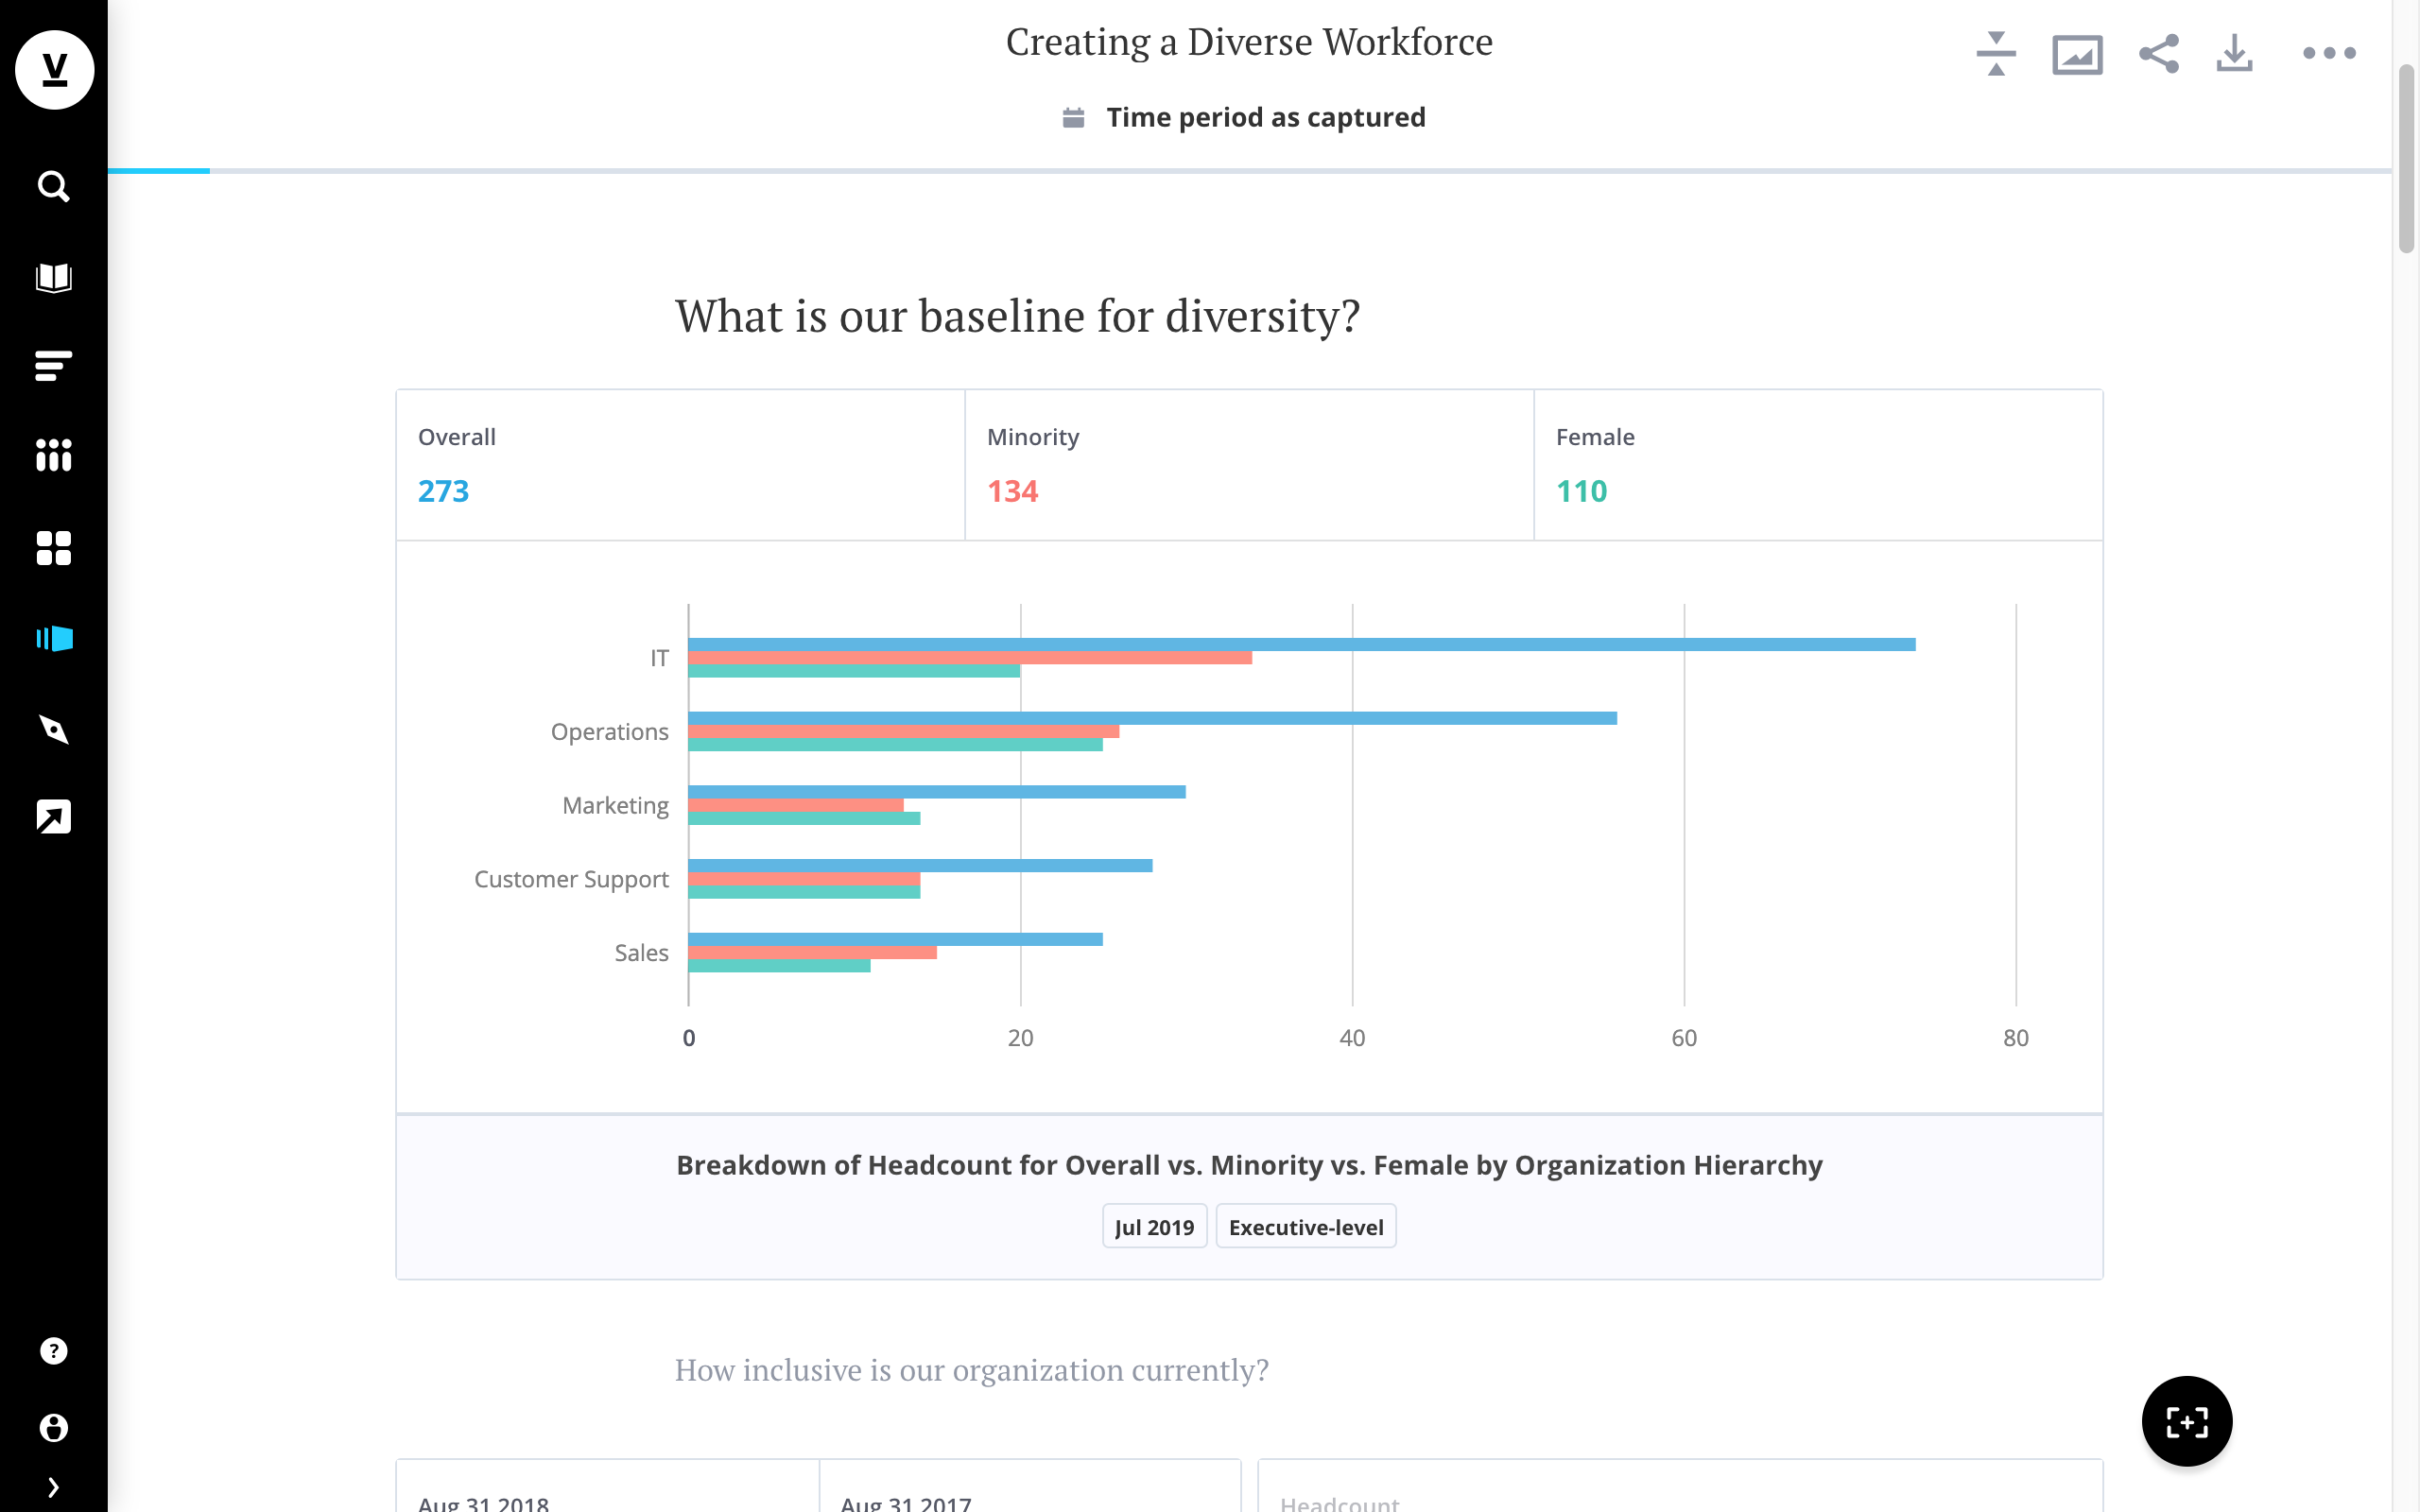 This headcount breakdown reveals whether there is diversity within the executive level